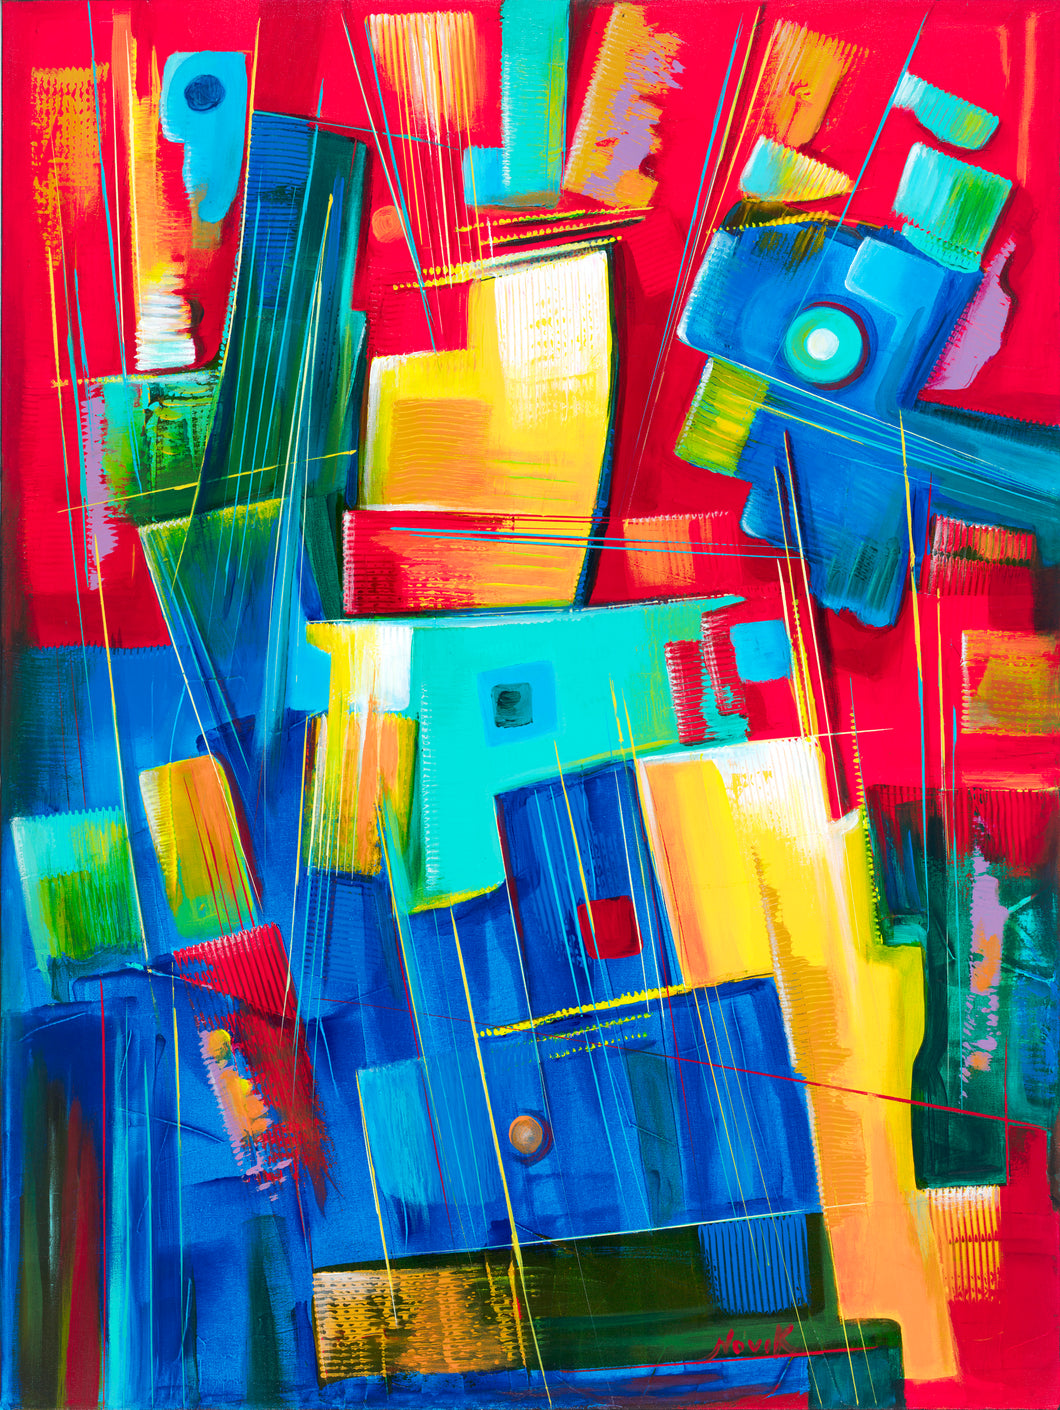 Mechanical Romance is an original painting by Art by Novik.  Novik is a Southern California artist made famous by his long-time presence on Venice Beach.  Novik paints in bright, vibrant colors in his unique abstract and abstract expressionist style. Prints on canvas and other materials are available for sale on this site.